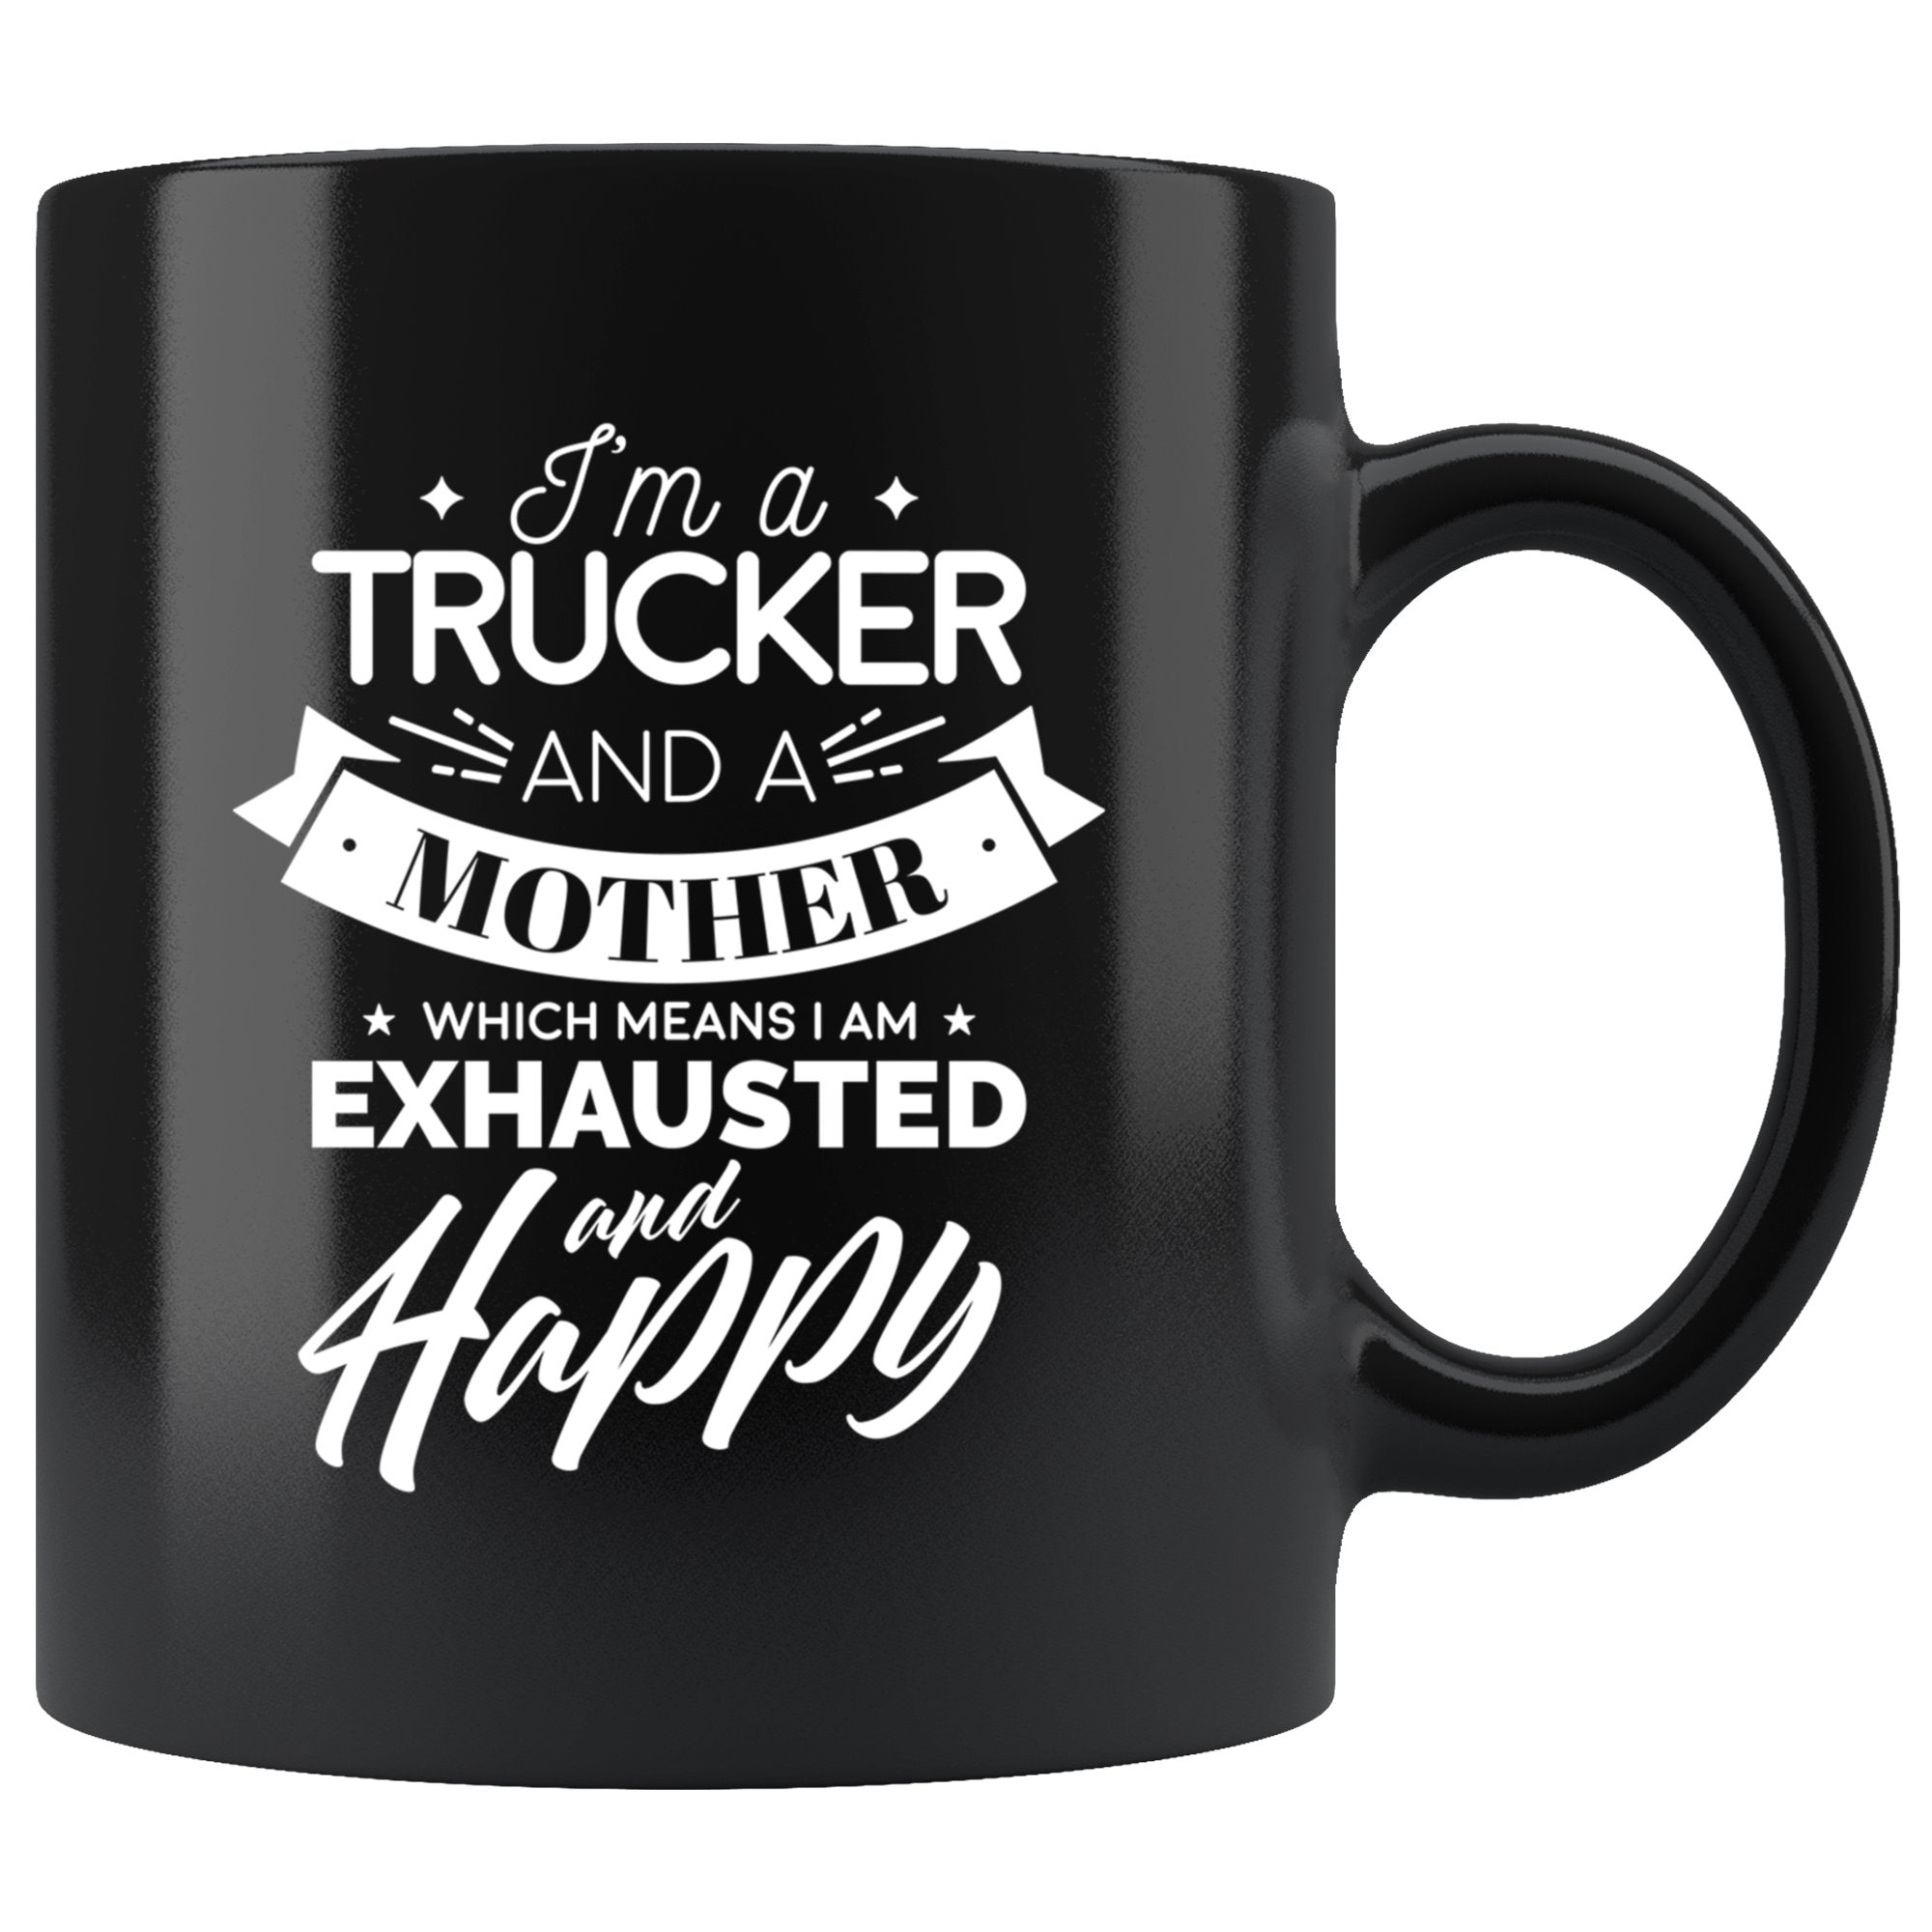 I'm A Trucker And A Mother Which Means I Am Exhausted And Happy Coffee Mug